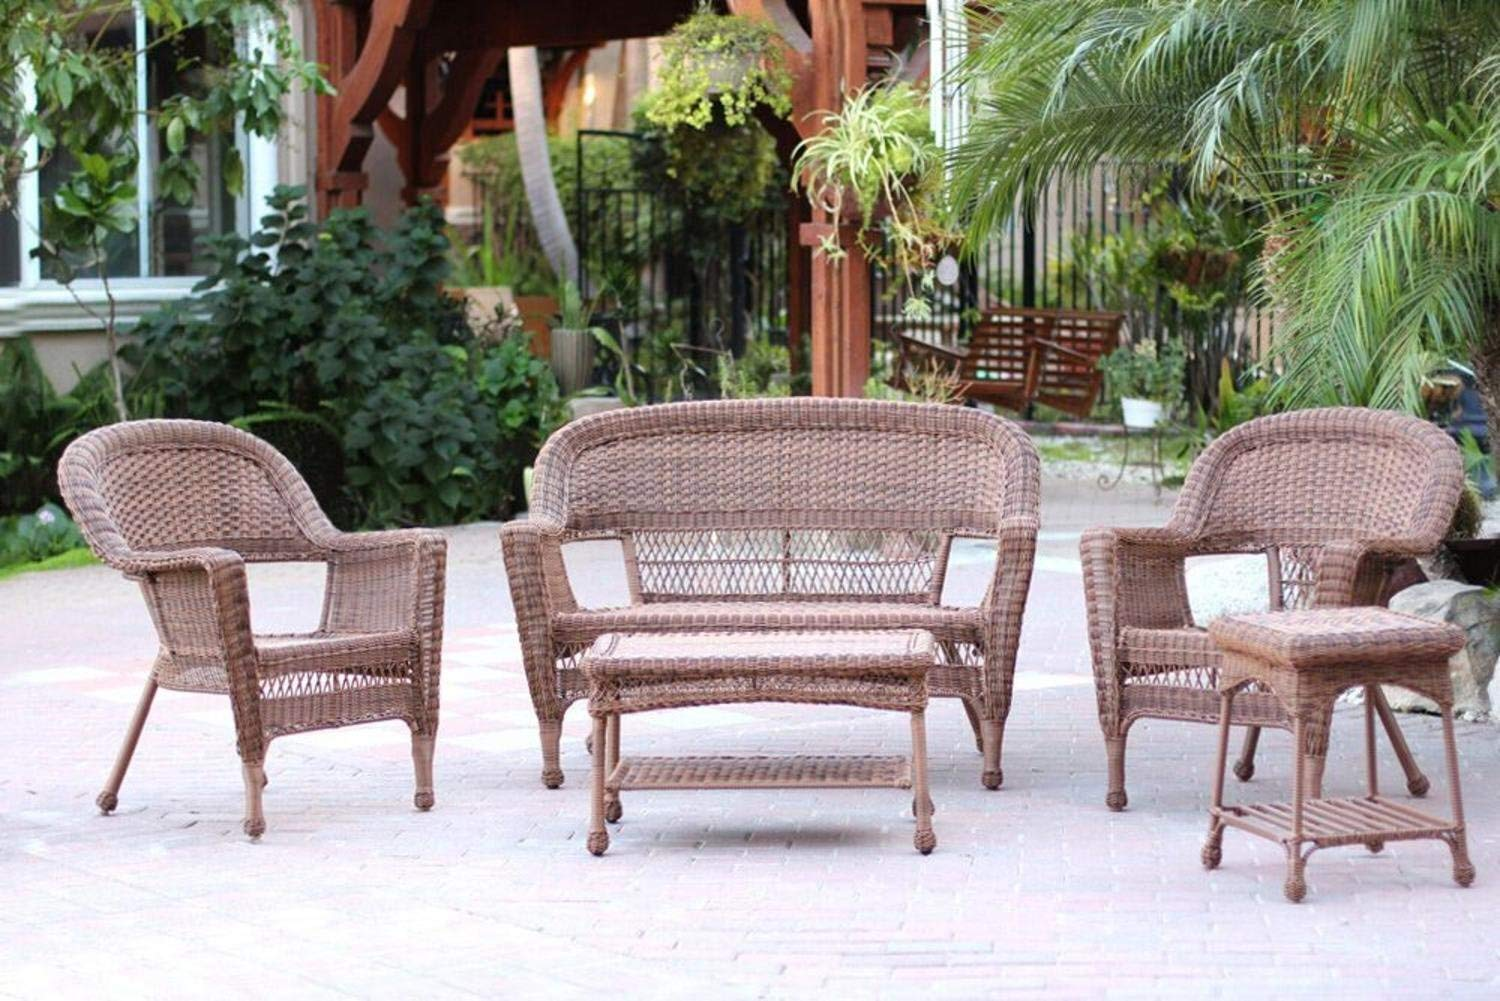 Brown Wicker Patio Furniture.4 Piece Swann Honey Brown Wicker Patio Chairs Loveseat And Table Furniture Set 4 Piece Swann Honey Brown Wicker Patio Chairs Loveseat And Table